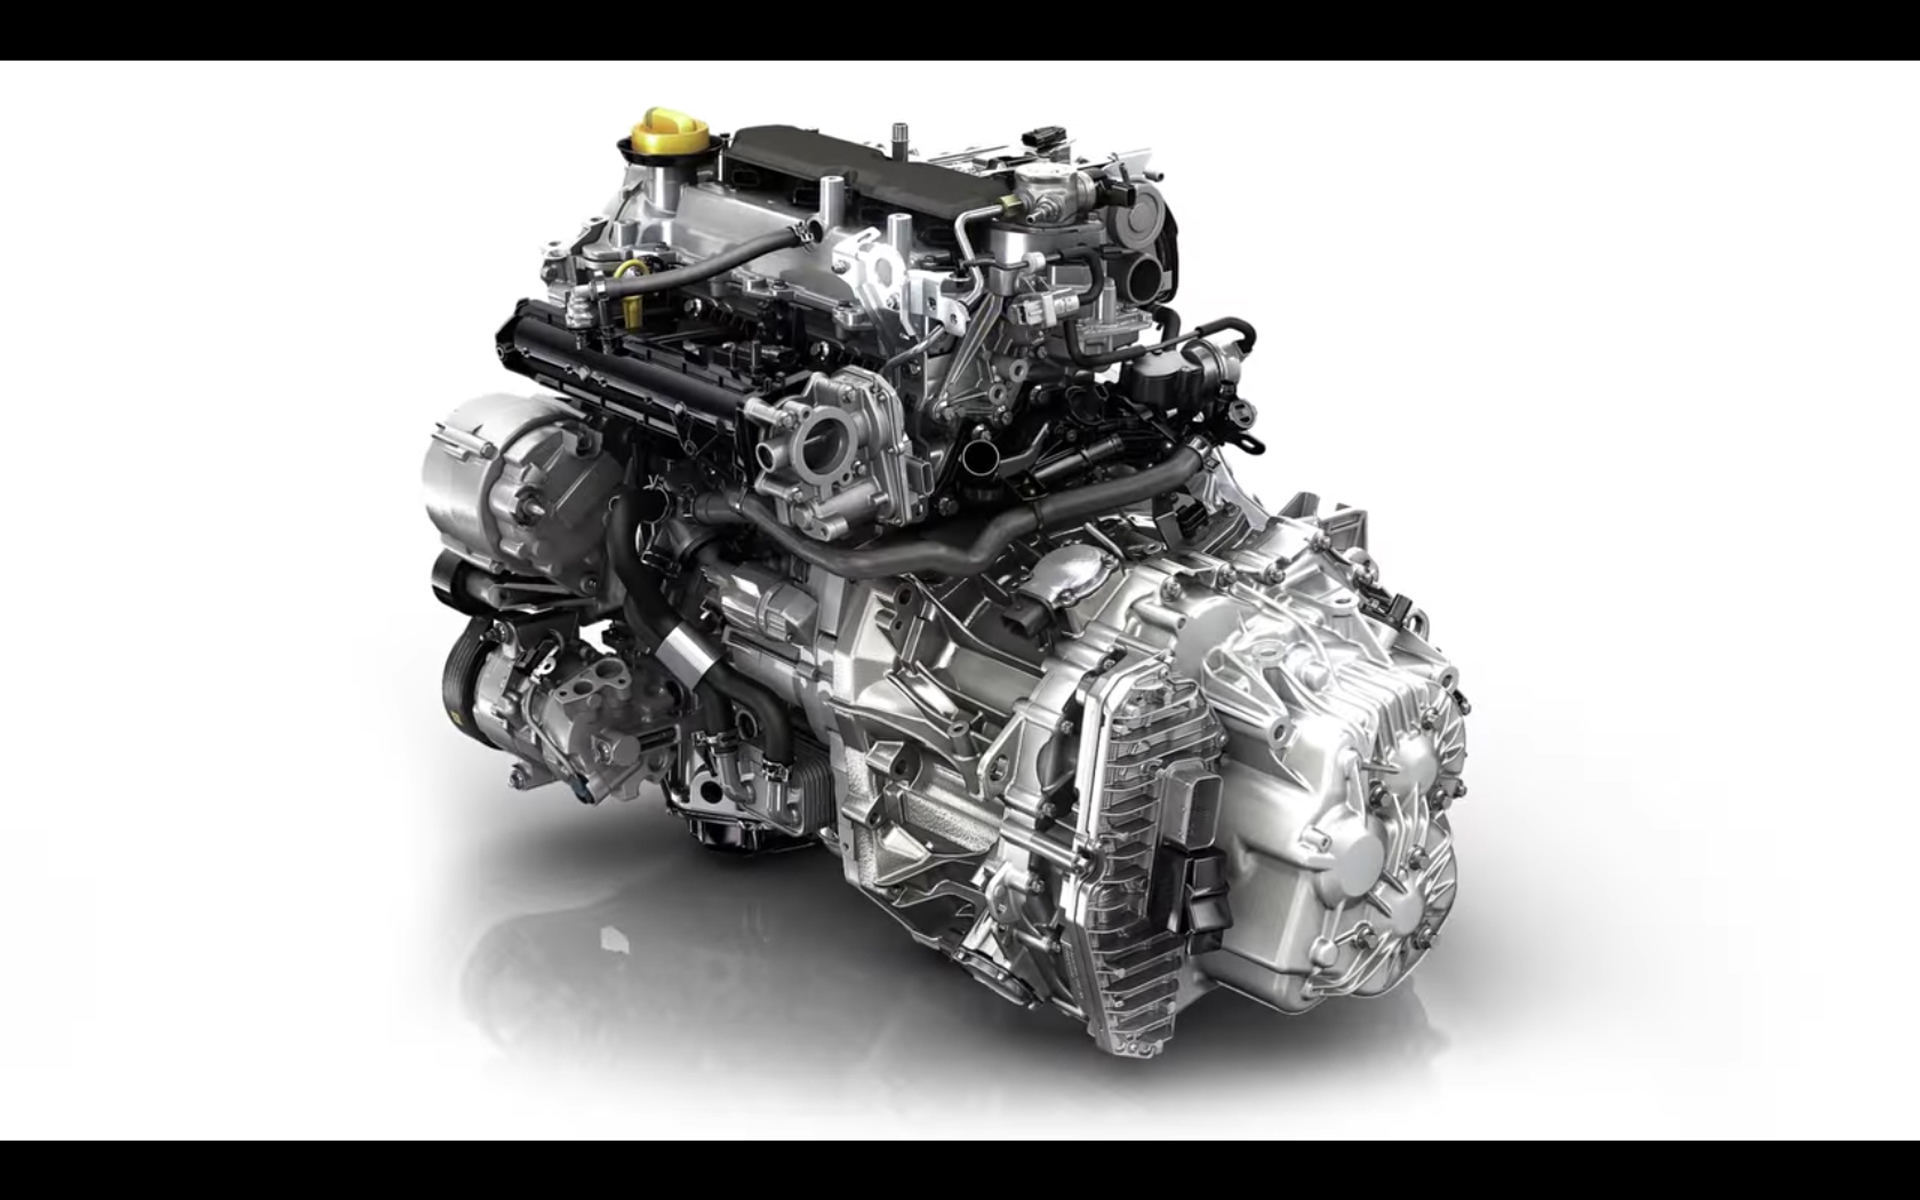 Renault - 1.8L TCe - engine / moteur - full preview